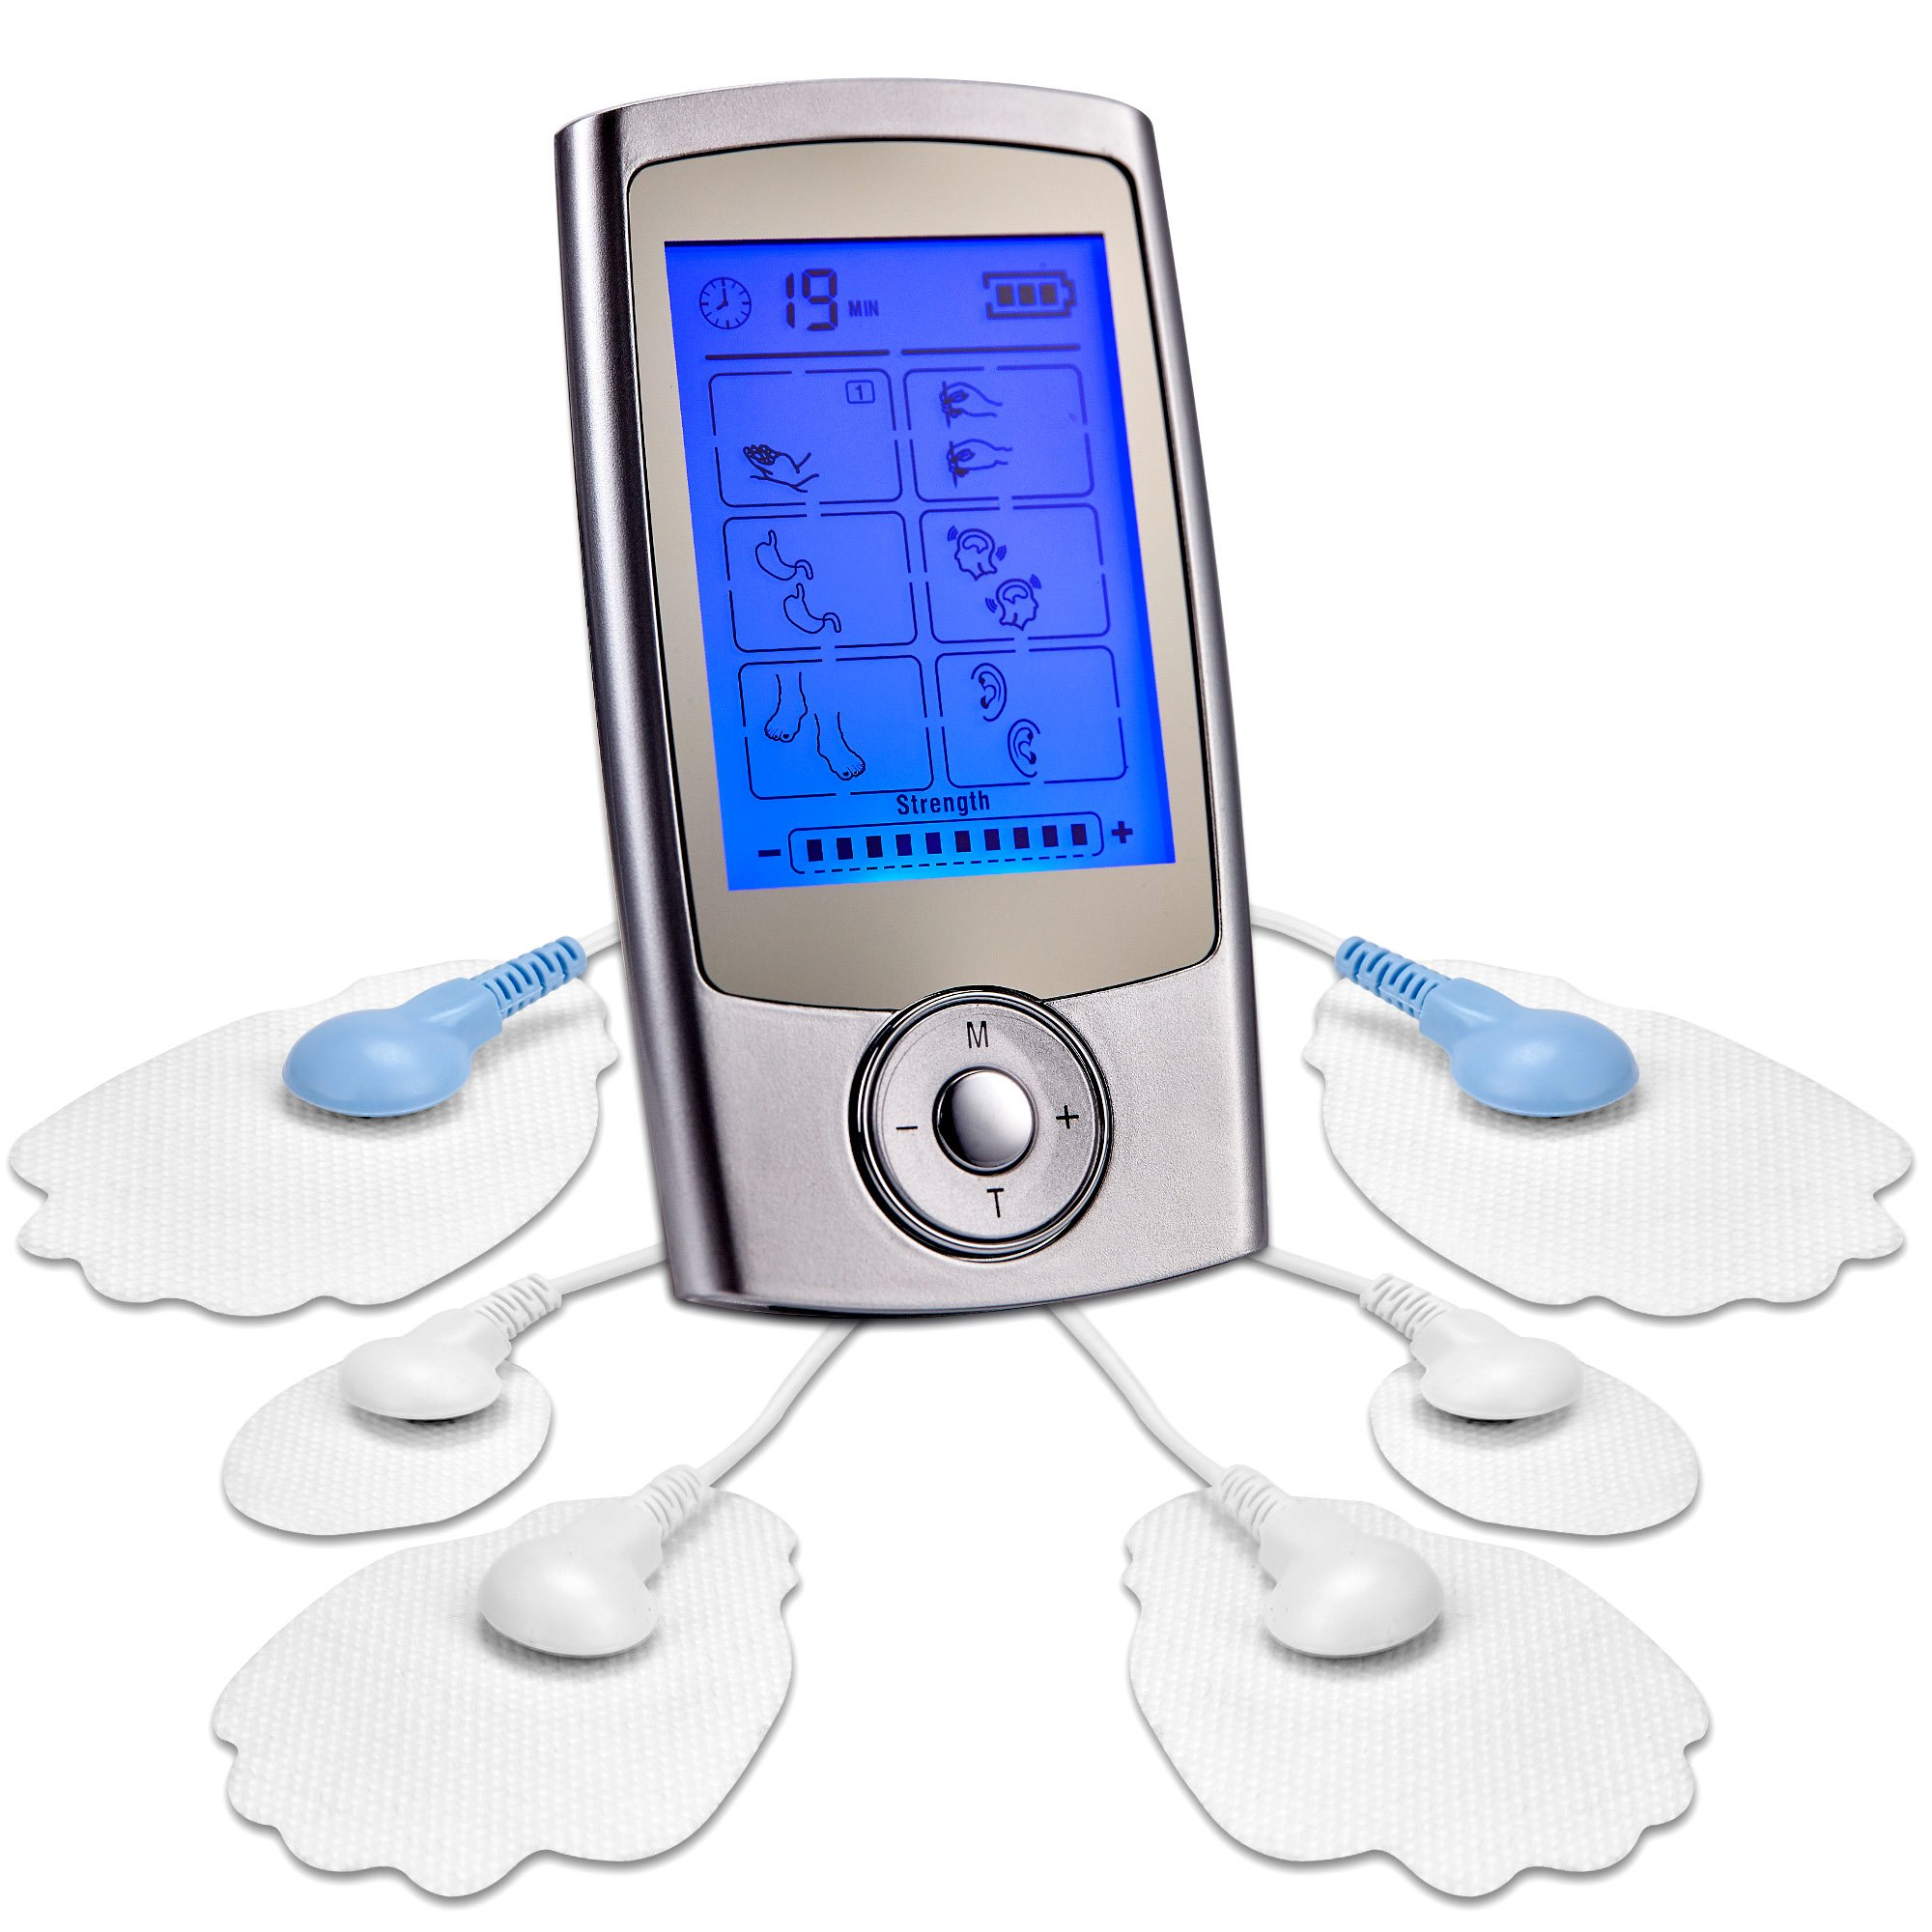 Tens Unit, FDA Approved LuxFit 16 Modes Portable Tens Machine EMS Electric Pulse Massager - Electrotherapy Back Pain Management and Muscle Stimulator